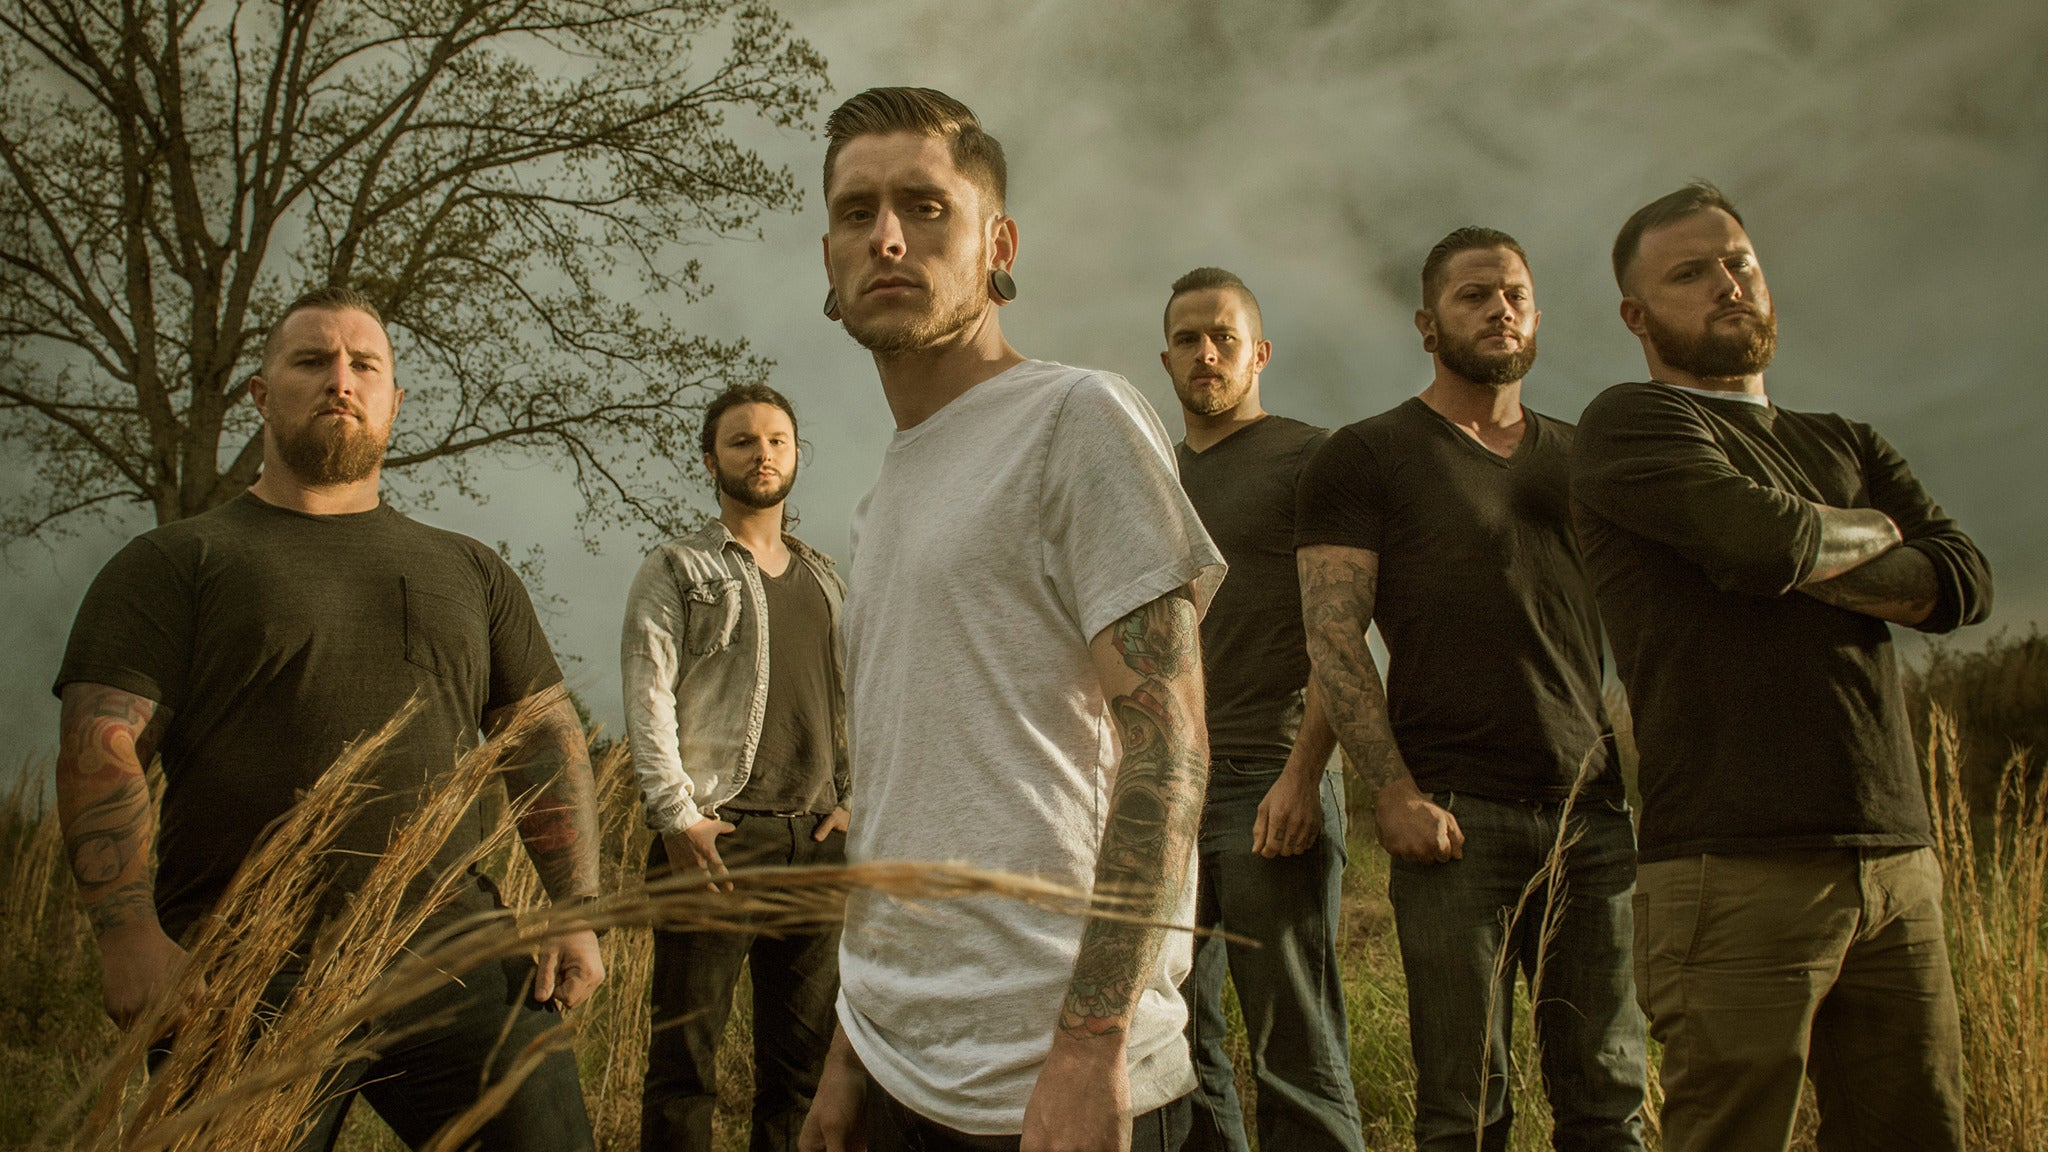 Whitechapel at Aggie Theater